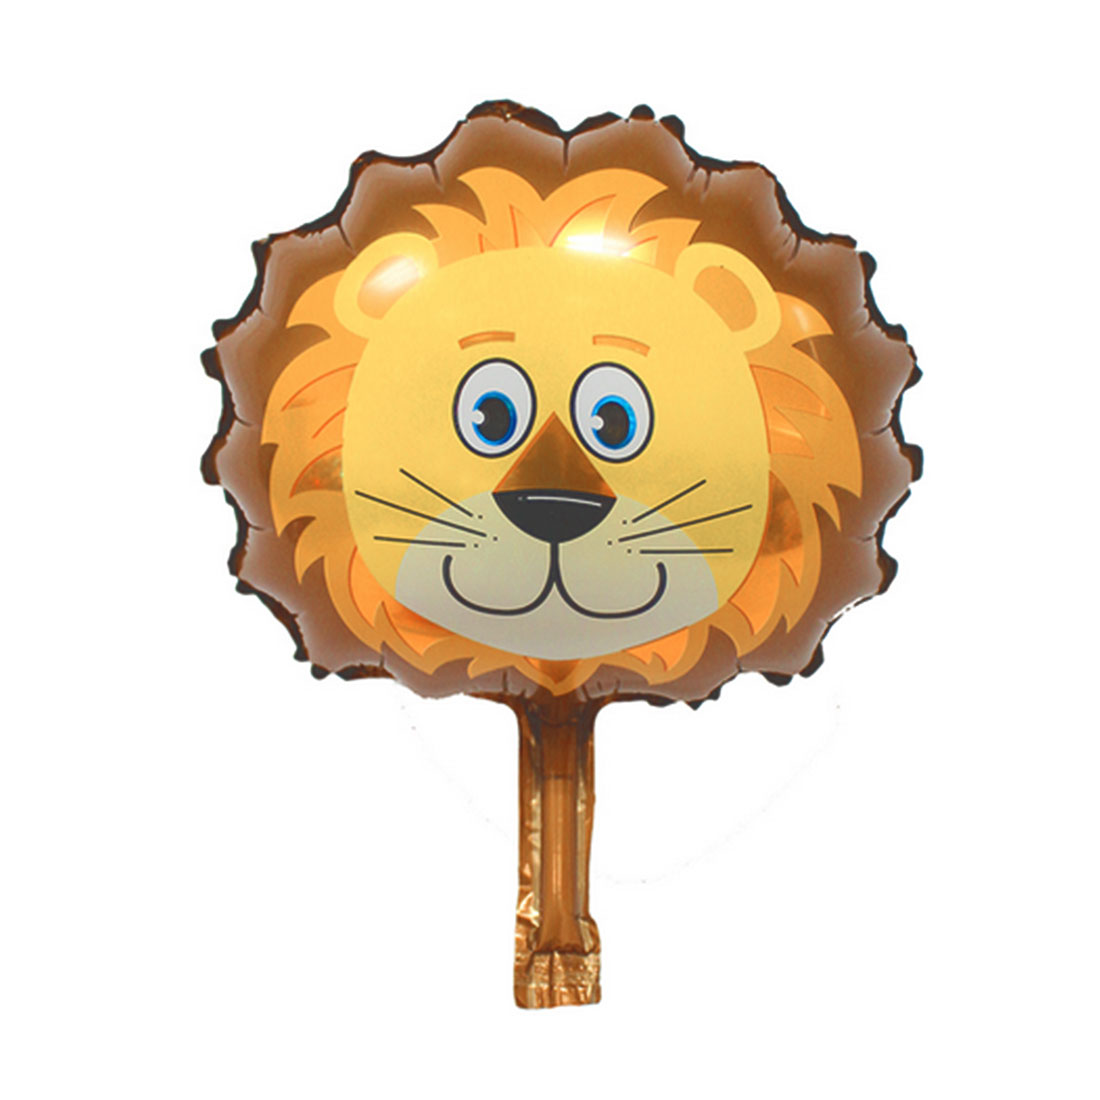 Foil Lion Design Inflation Helium Balloon Birthday Festival Celebration Anniversary Ornament 9 Inch